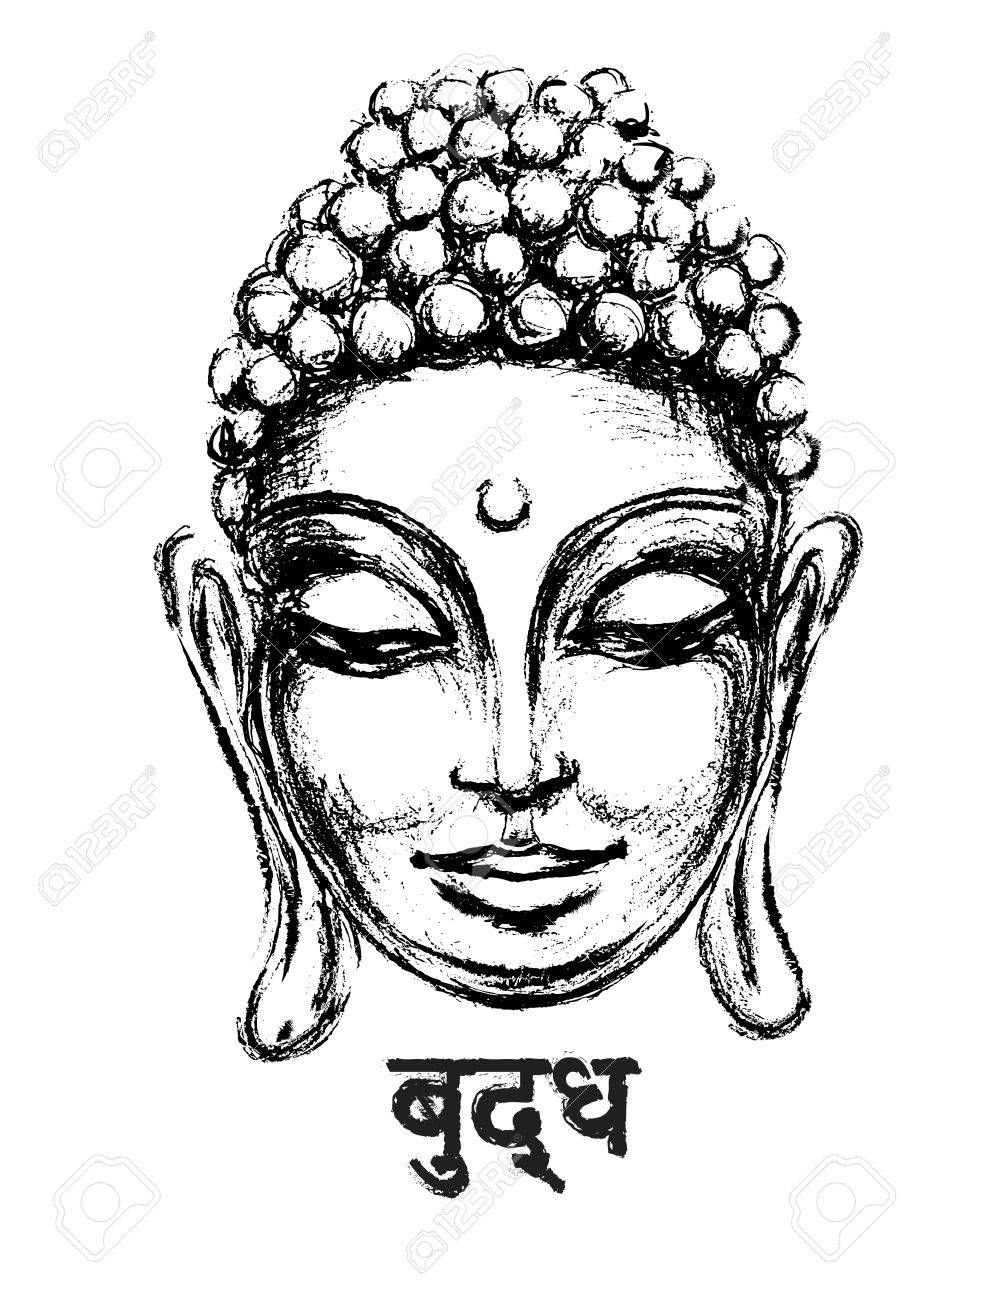 Sketch head smiling buddha in meditation and nirvana in a state sketch head smiling buddha in meditation and nirvana in a state of zen and the inscription biocorpaavc Images